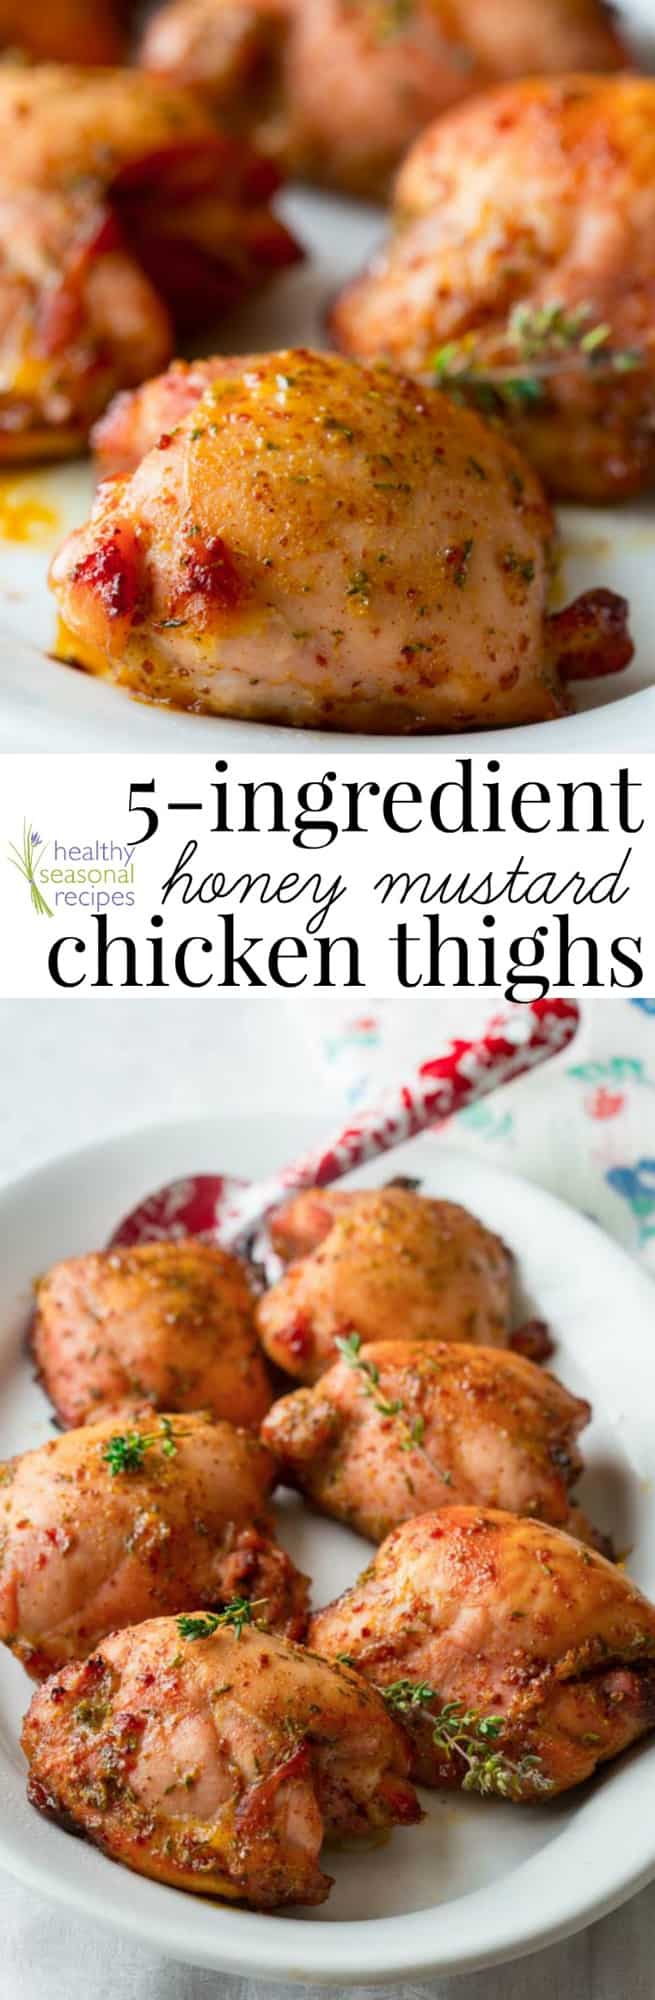 These easy honey mustard chicken thighs are perfect for busy weeknights! Kids love this recipe, plus it only uses 5 ingredients. Win-win! #honey #mustard #honeymustard #chicken #chickenthighs #5ingredients #easy #healthy #familyfriendly #kidfriendly #weeknight #dinner #dinnerrecipe #chickenrecipe #glutenfree